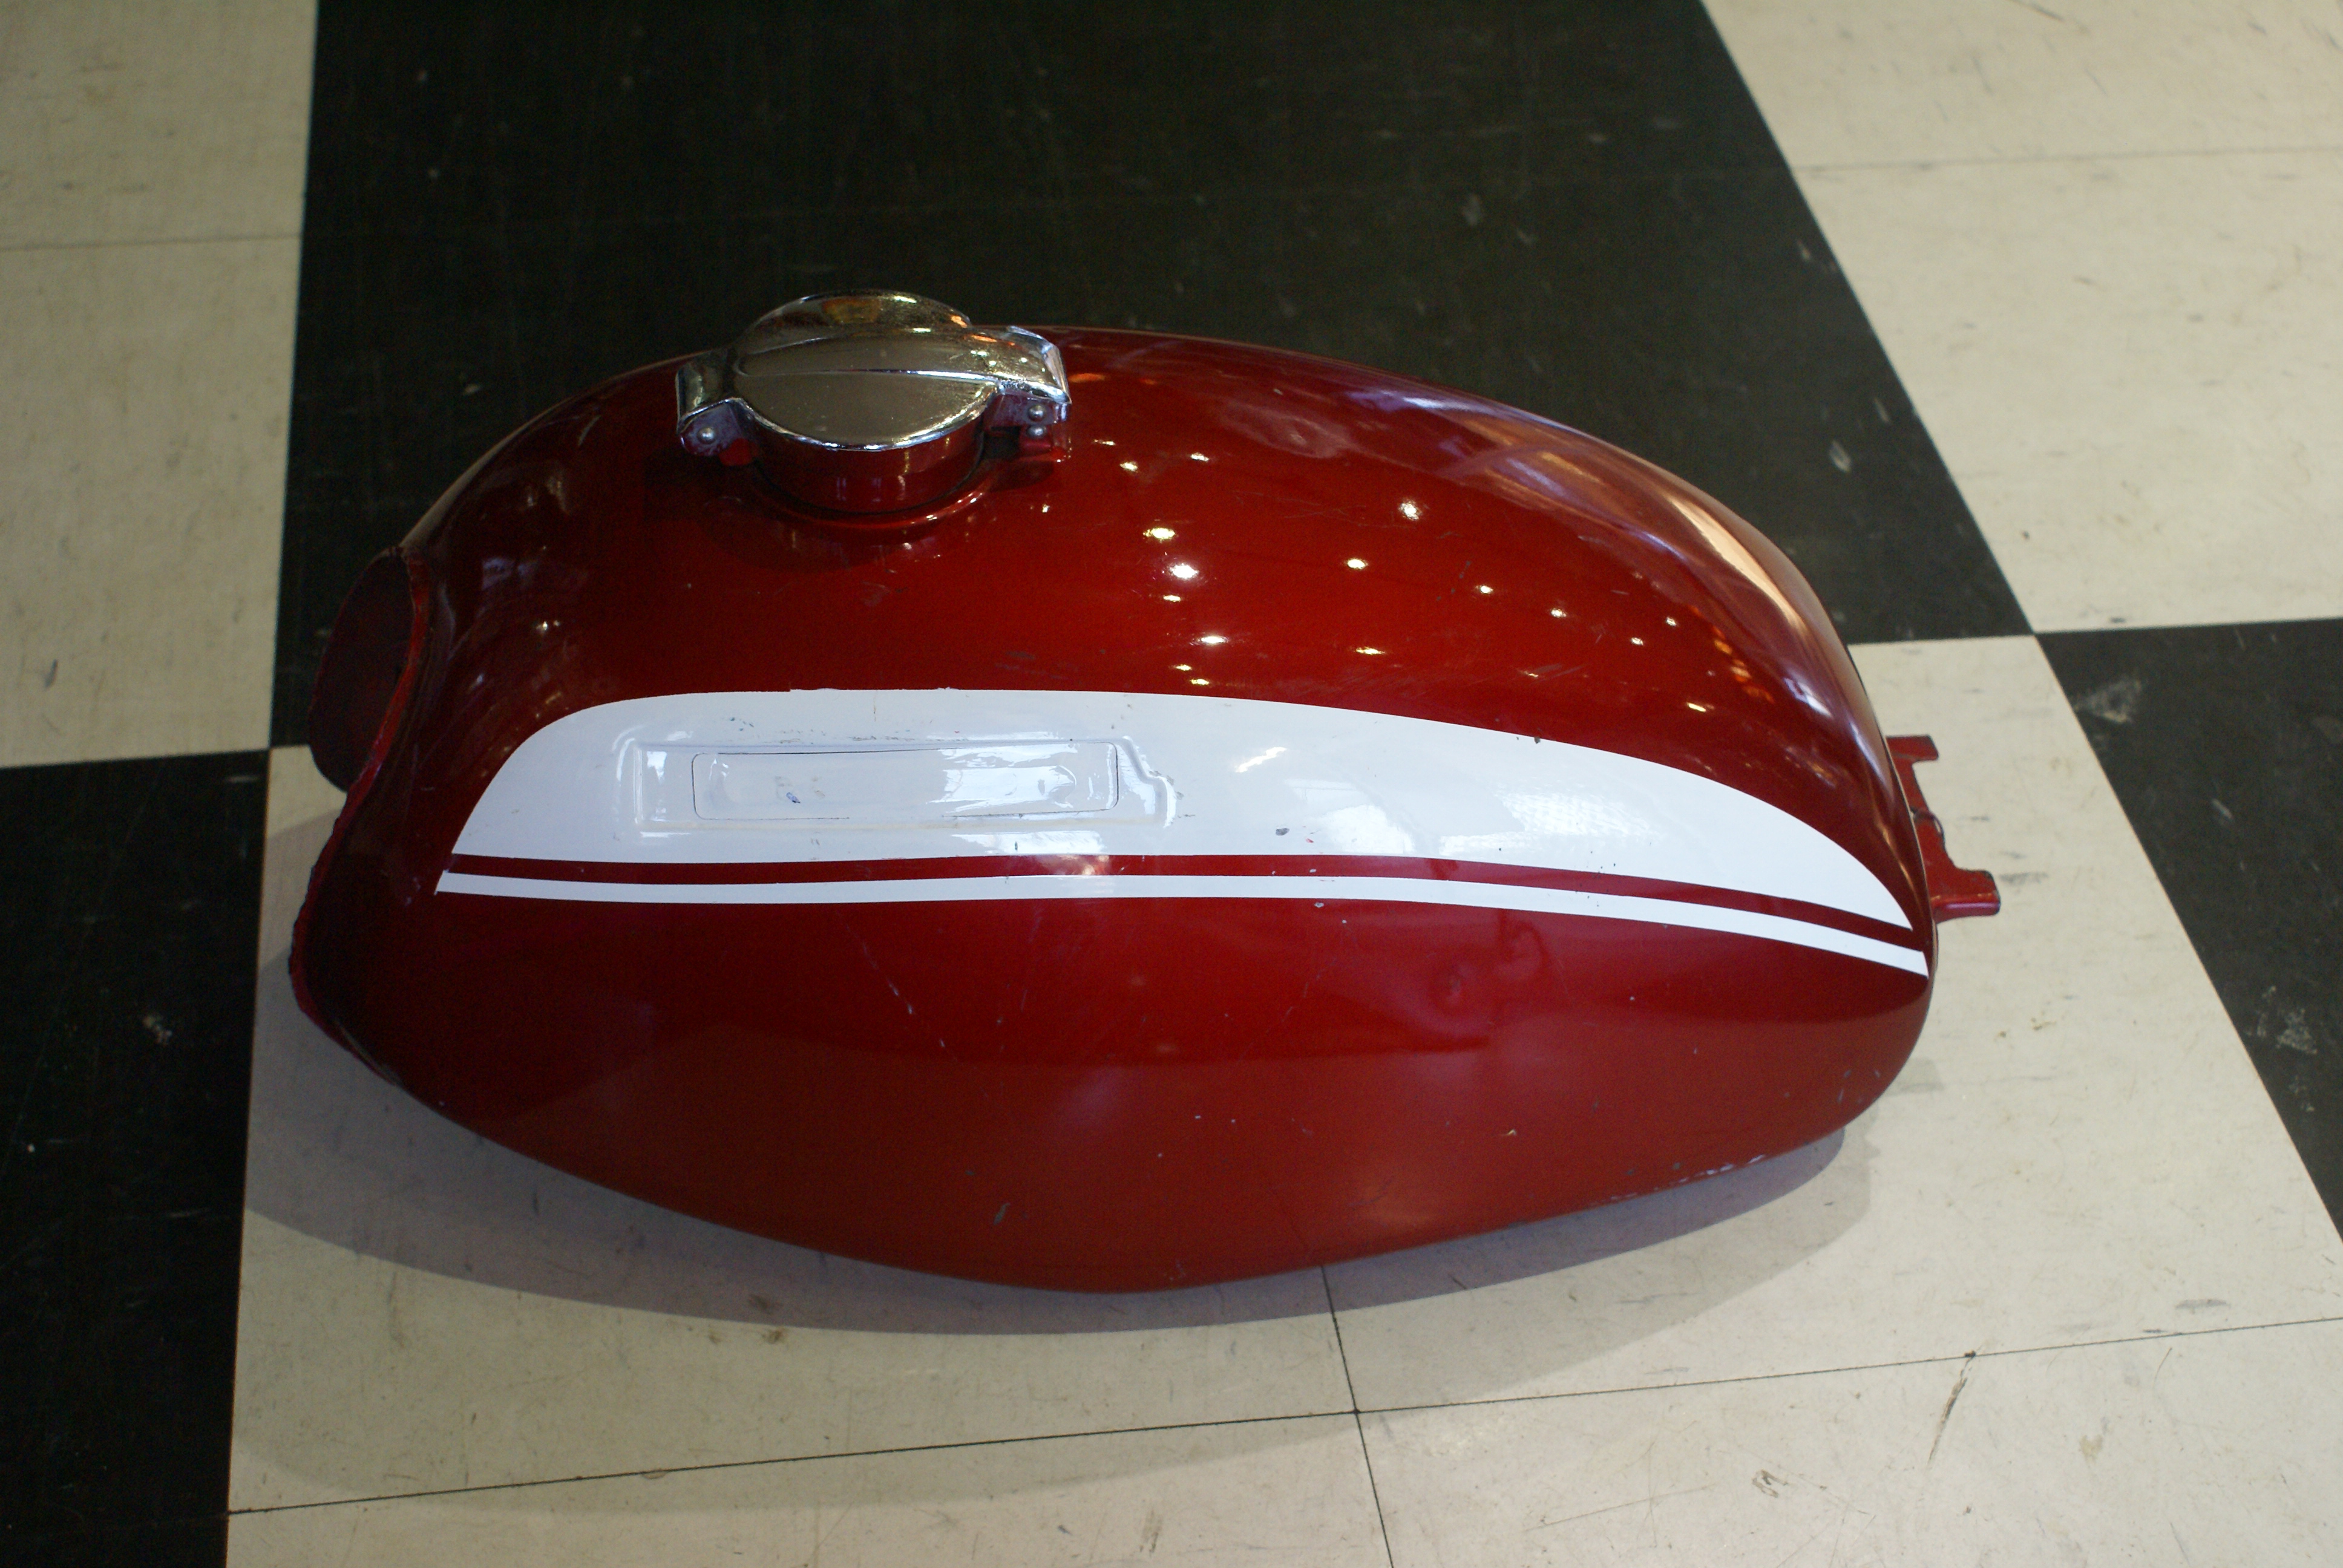 The Canadian Classic Bike Exchange Buy And Sell Motorcycle Ads 1970 Honda Ct70 Fuel Tank 1971 Sl350 New Old Stock